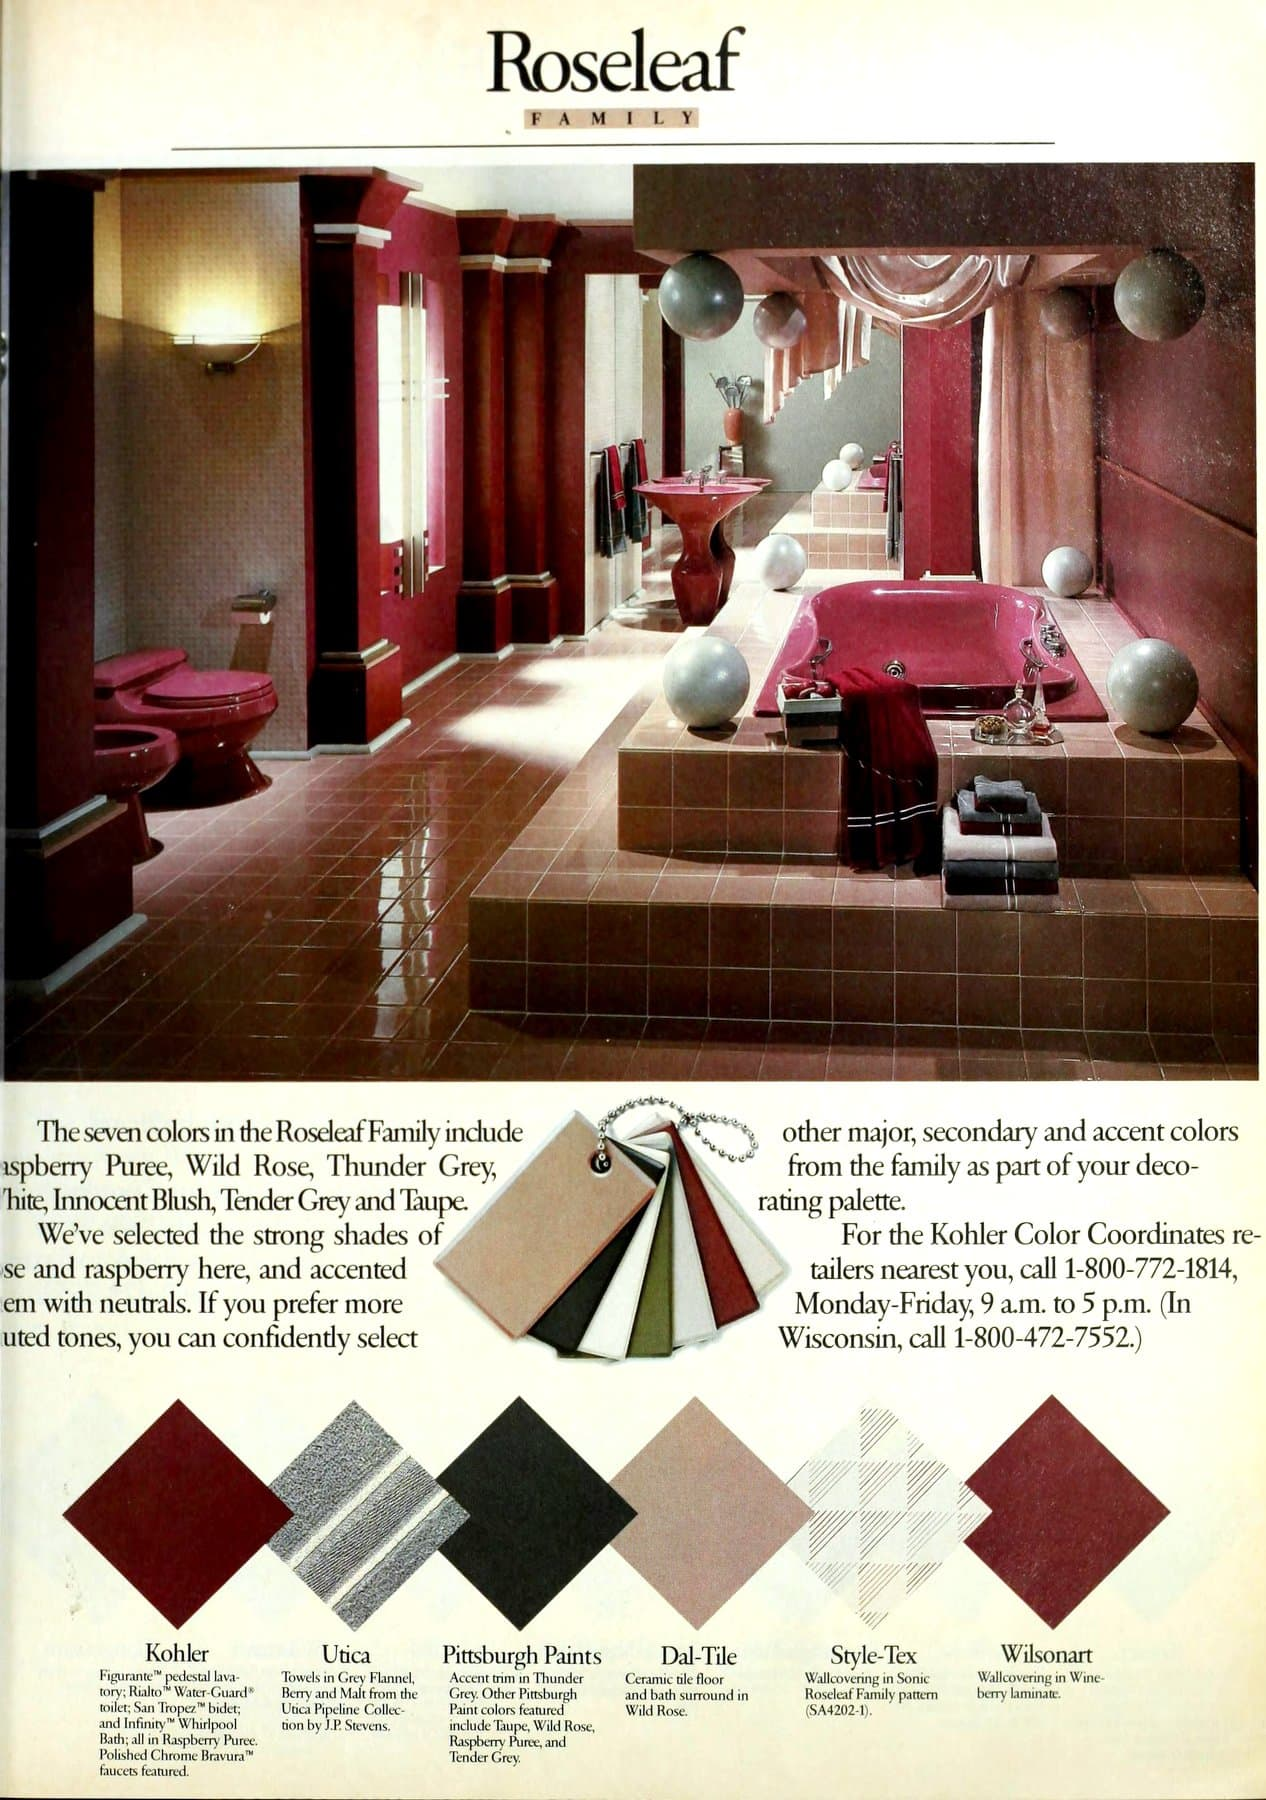 Retro '80s Roseleaf bathroom decor (1986)